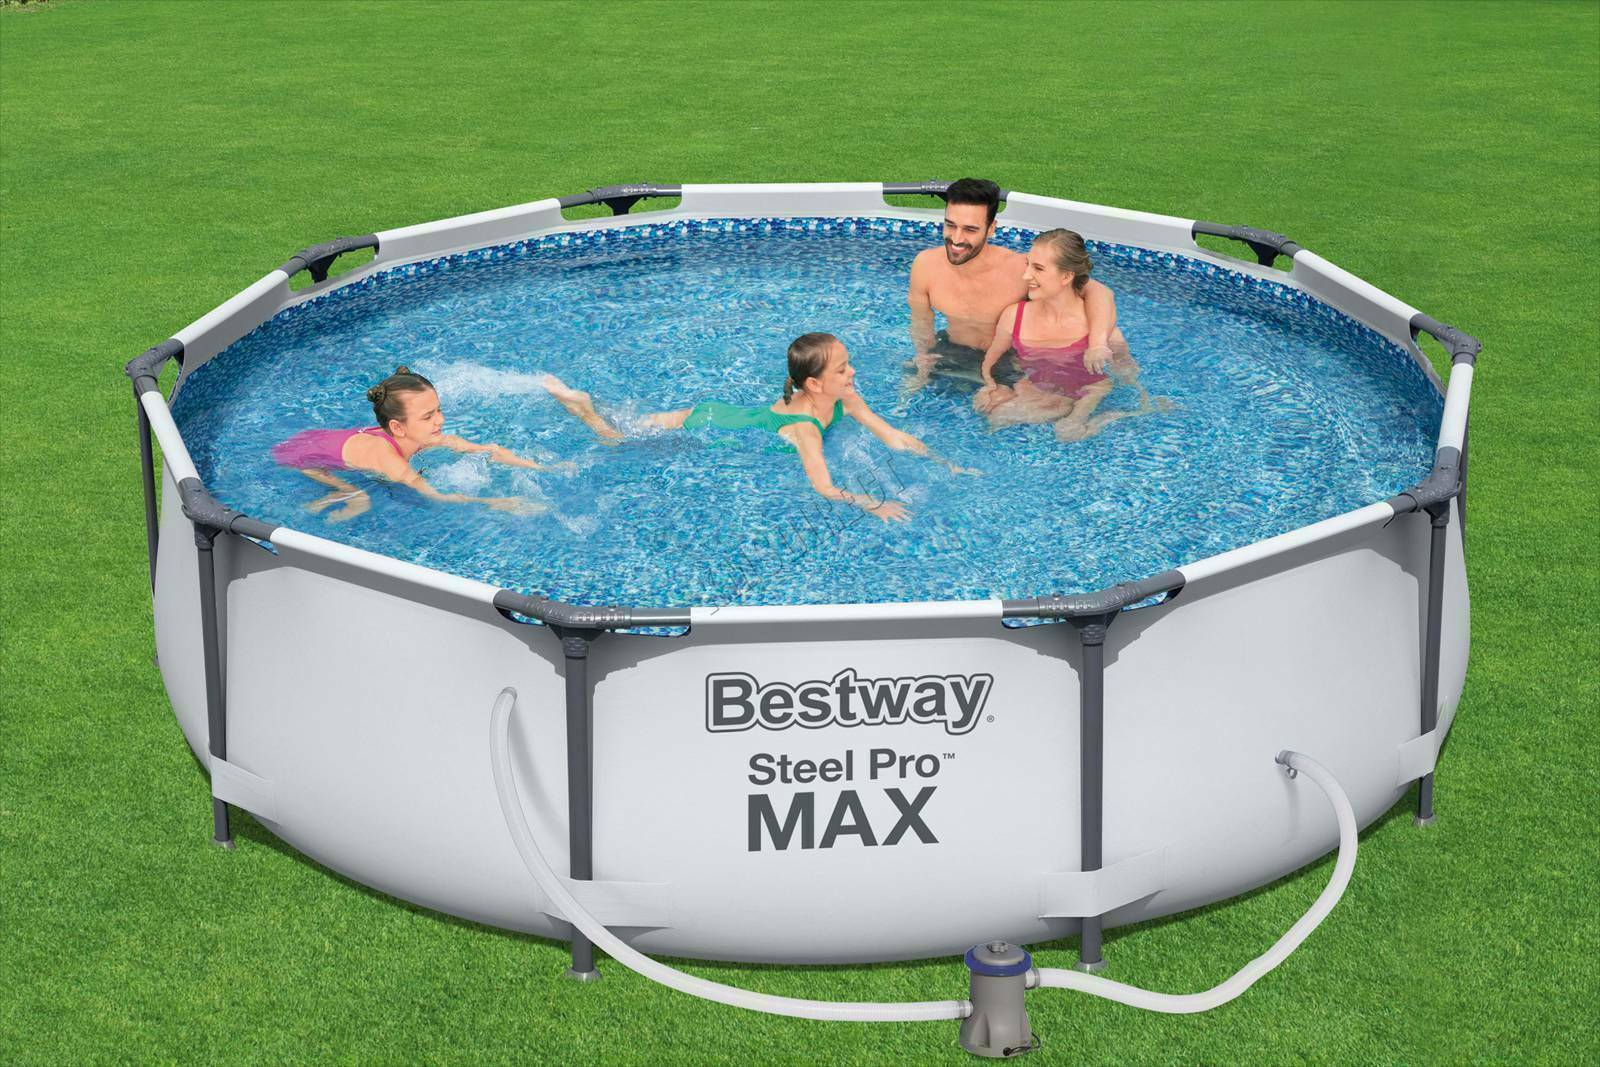 Bestway 10ft Steel Pro Max Above Ground Swimming Pool ✅ Filter Pump✅Fast Postage